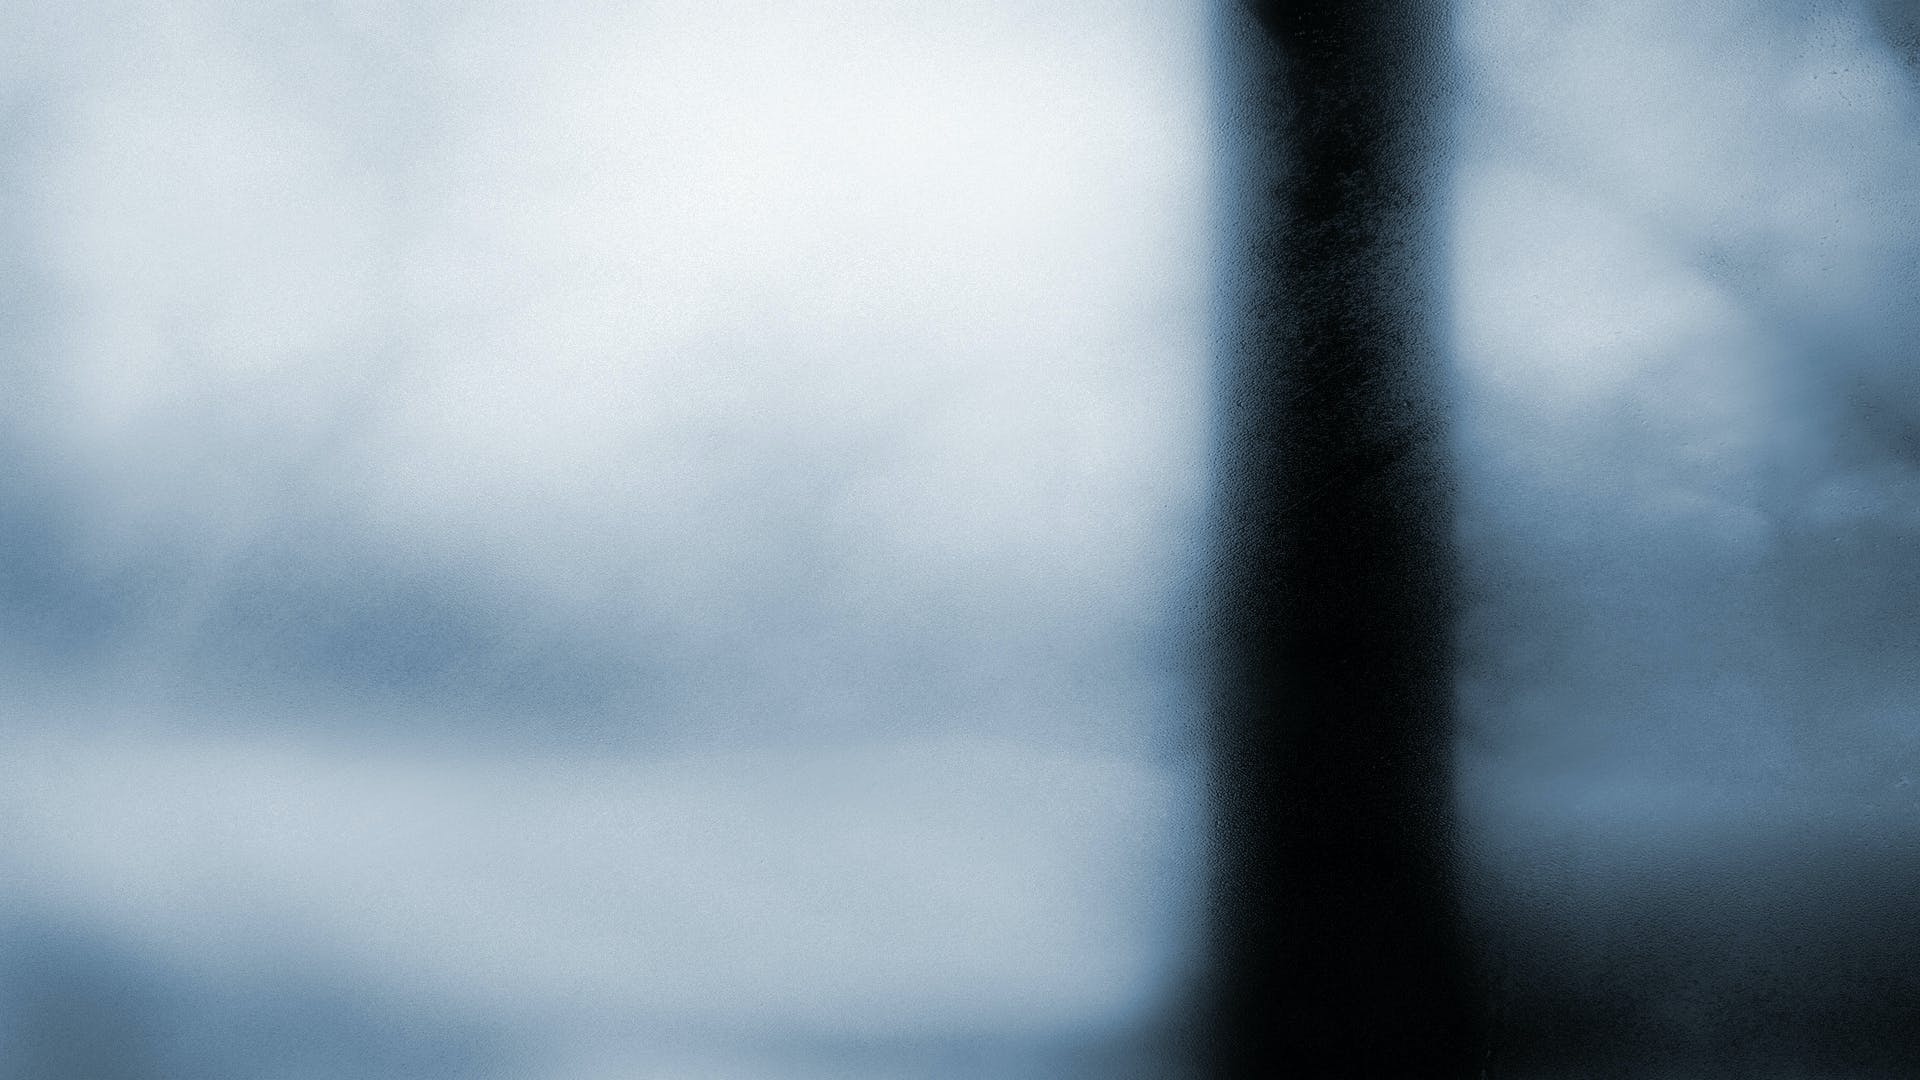 Free stock photo of abstract, blurry, surr3eal